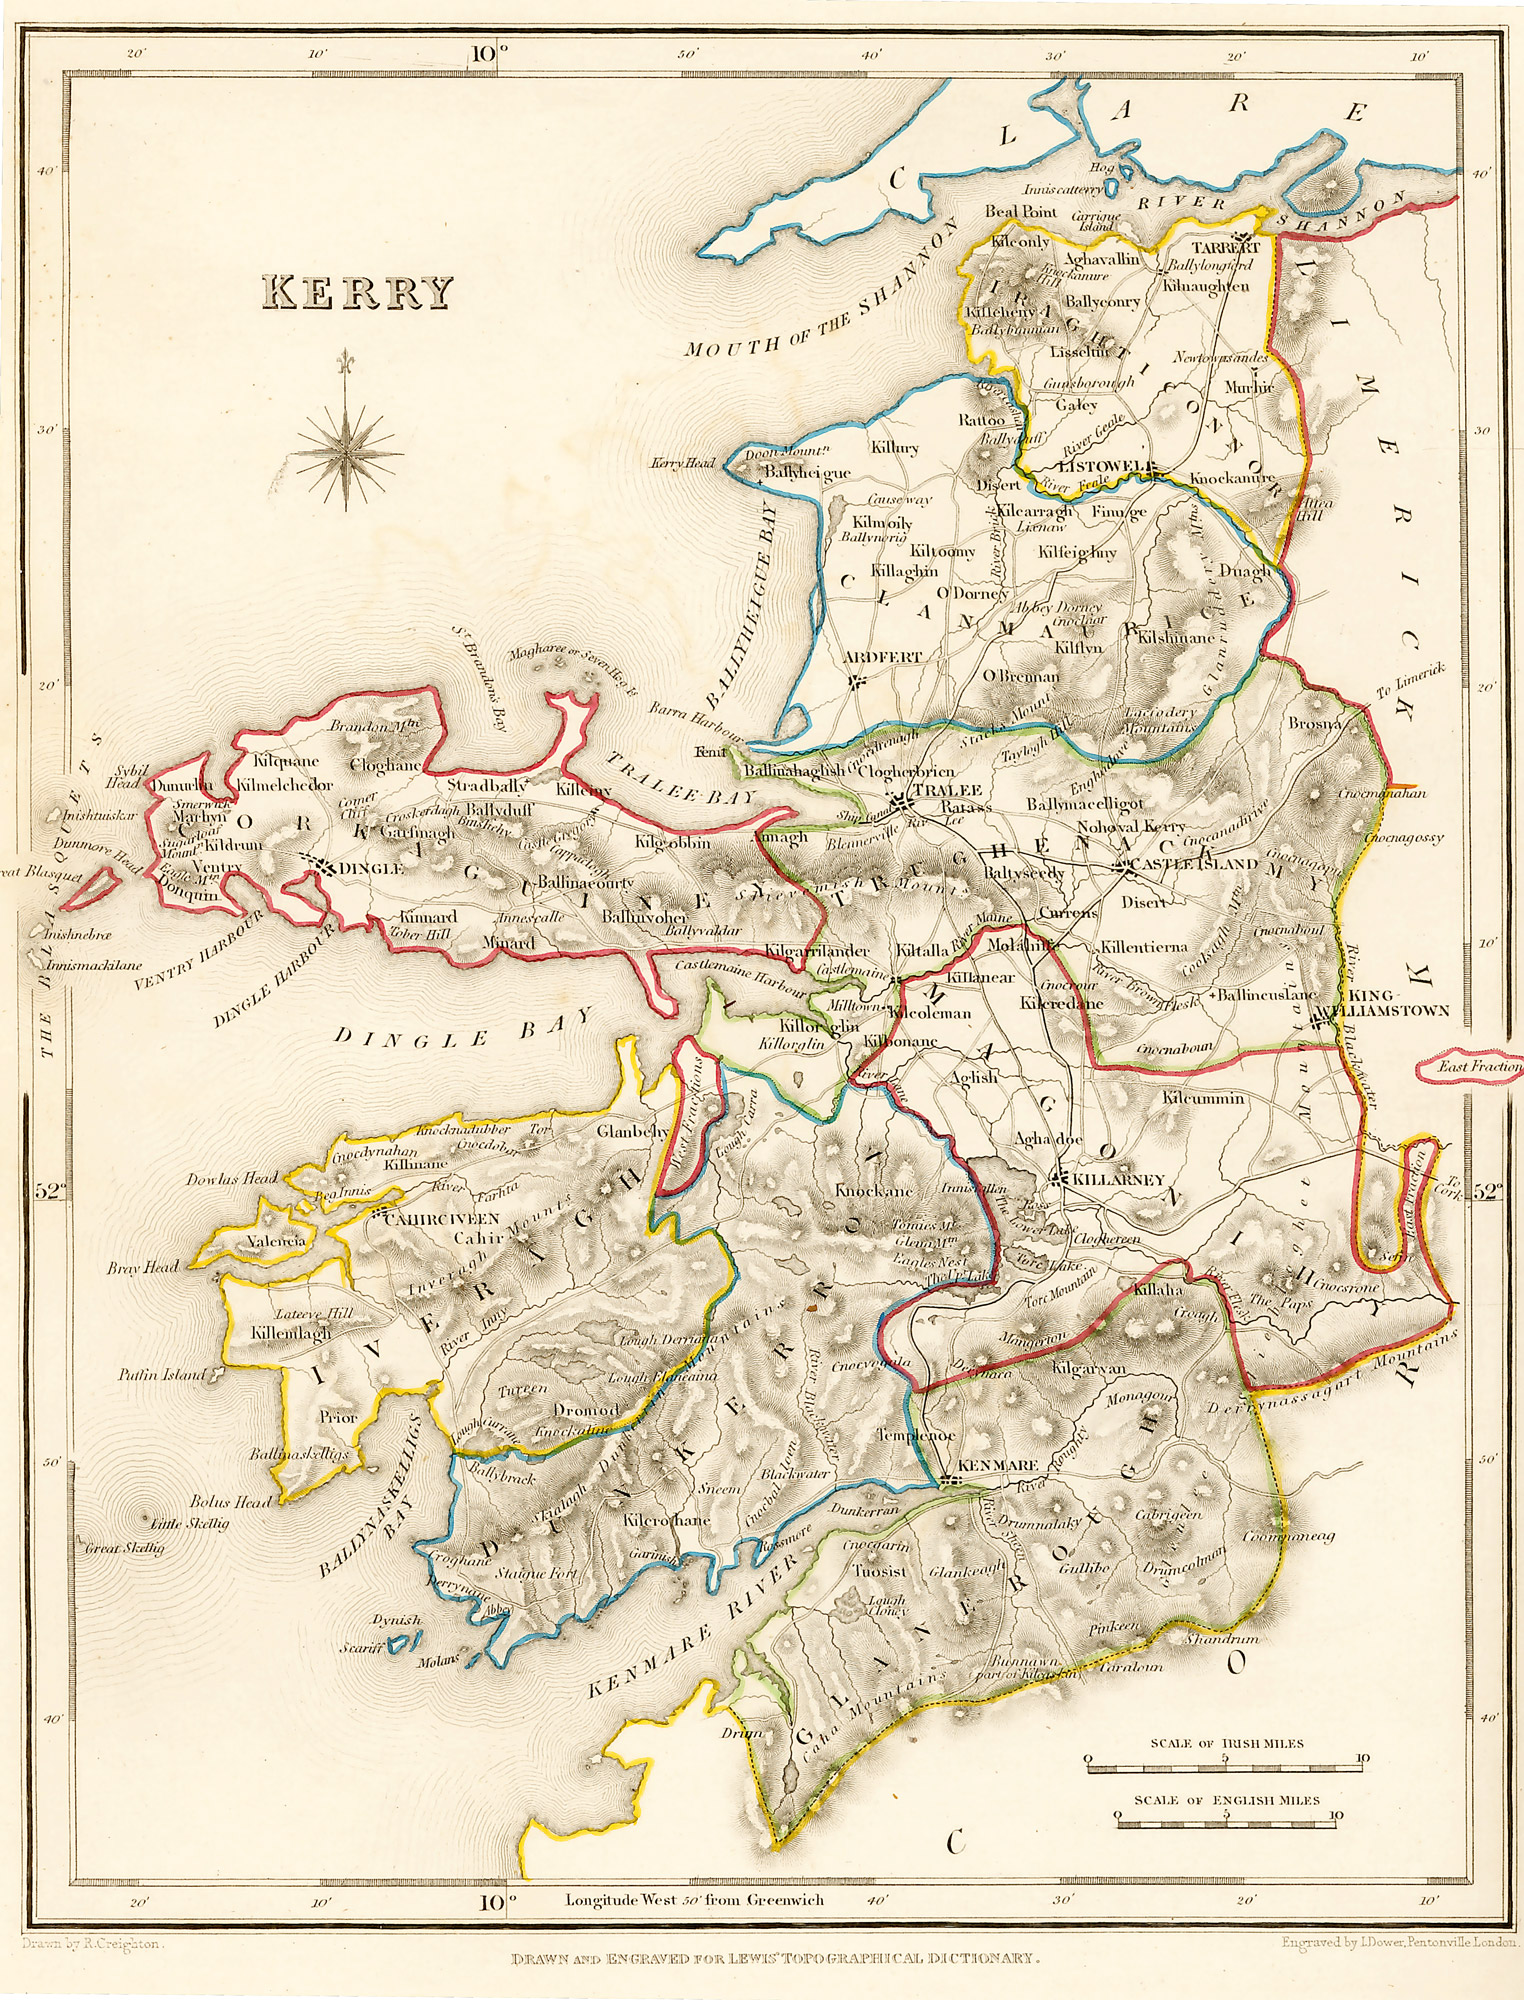 Map Of Ireland Midlands.Historic Maps All Island Ireland Map Collections At Ucd And On